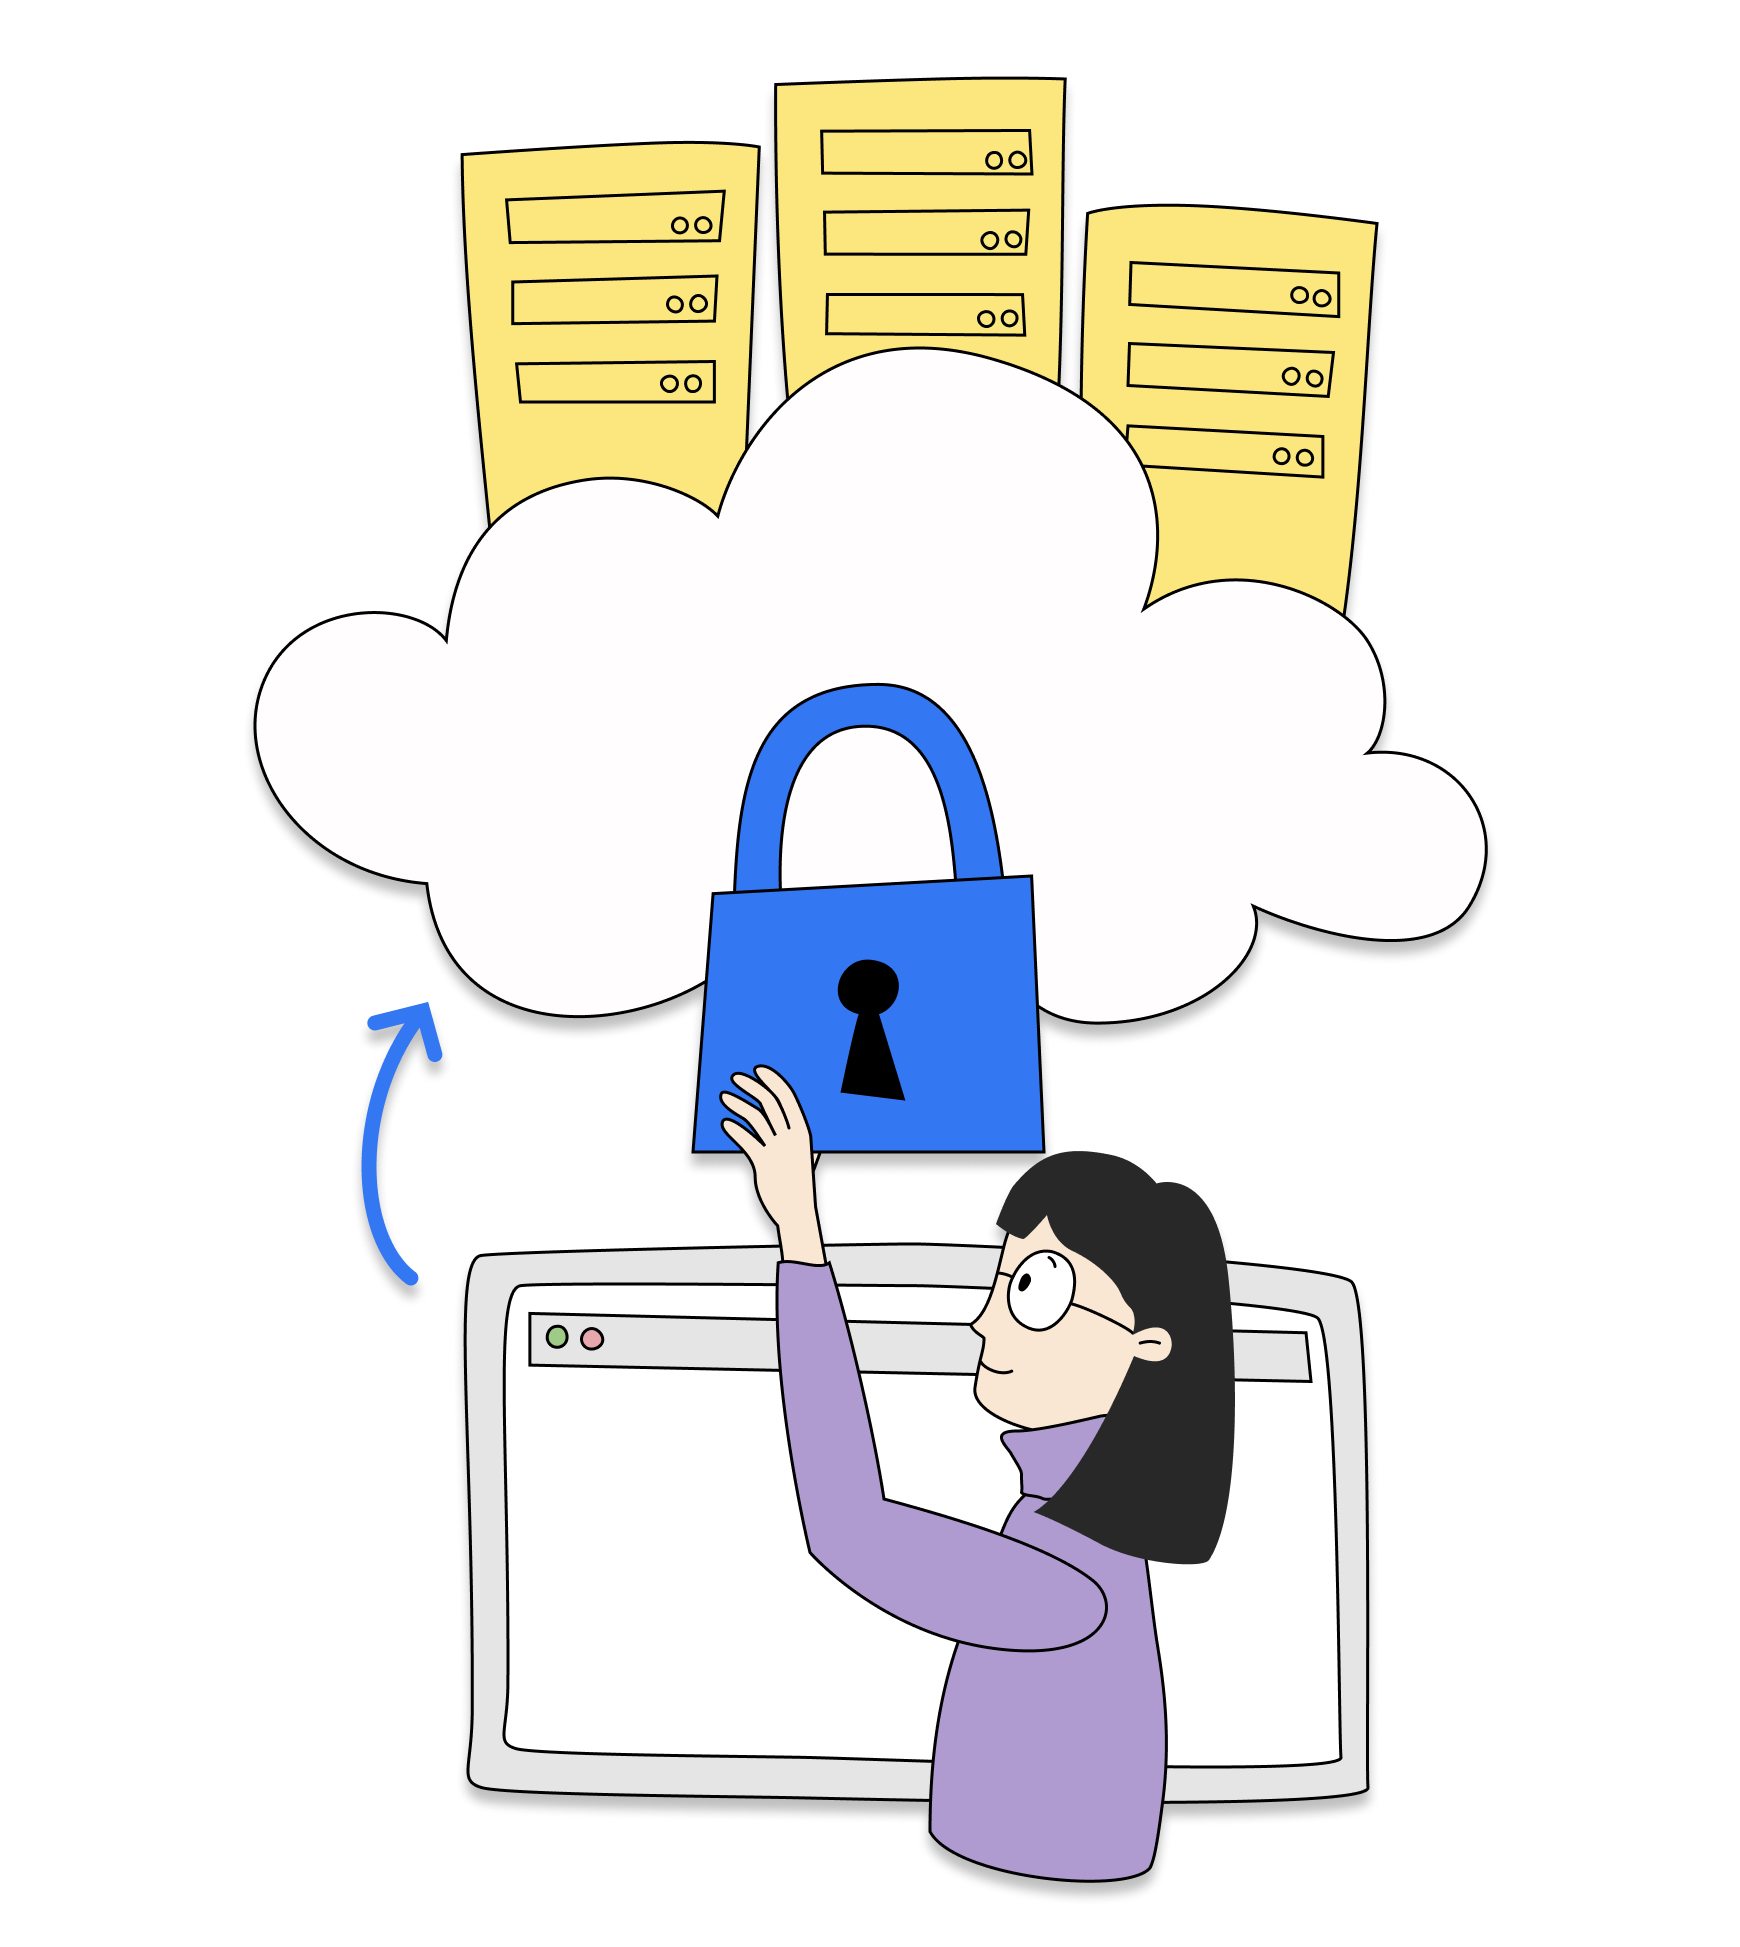 Woman employee accessing cloud resources through a private network